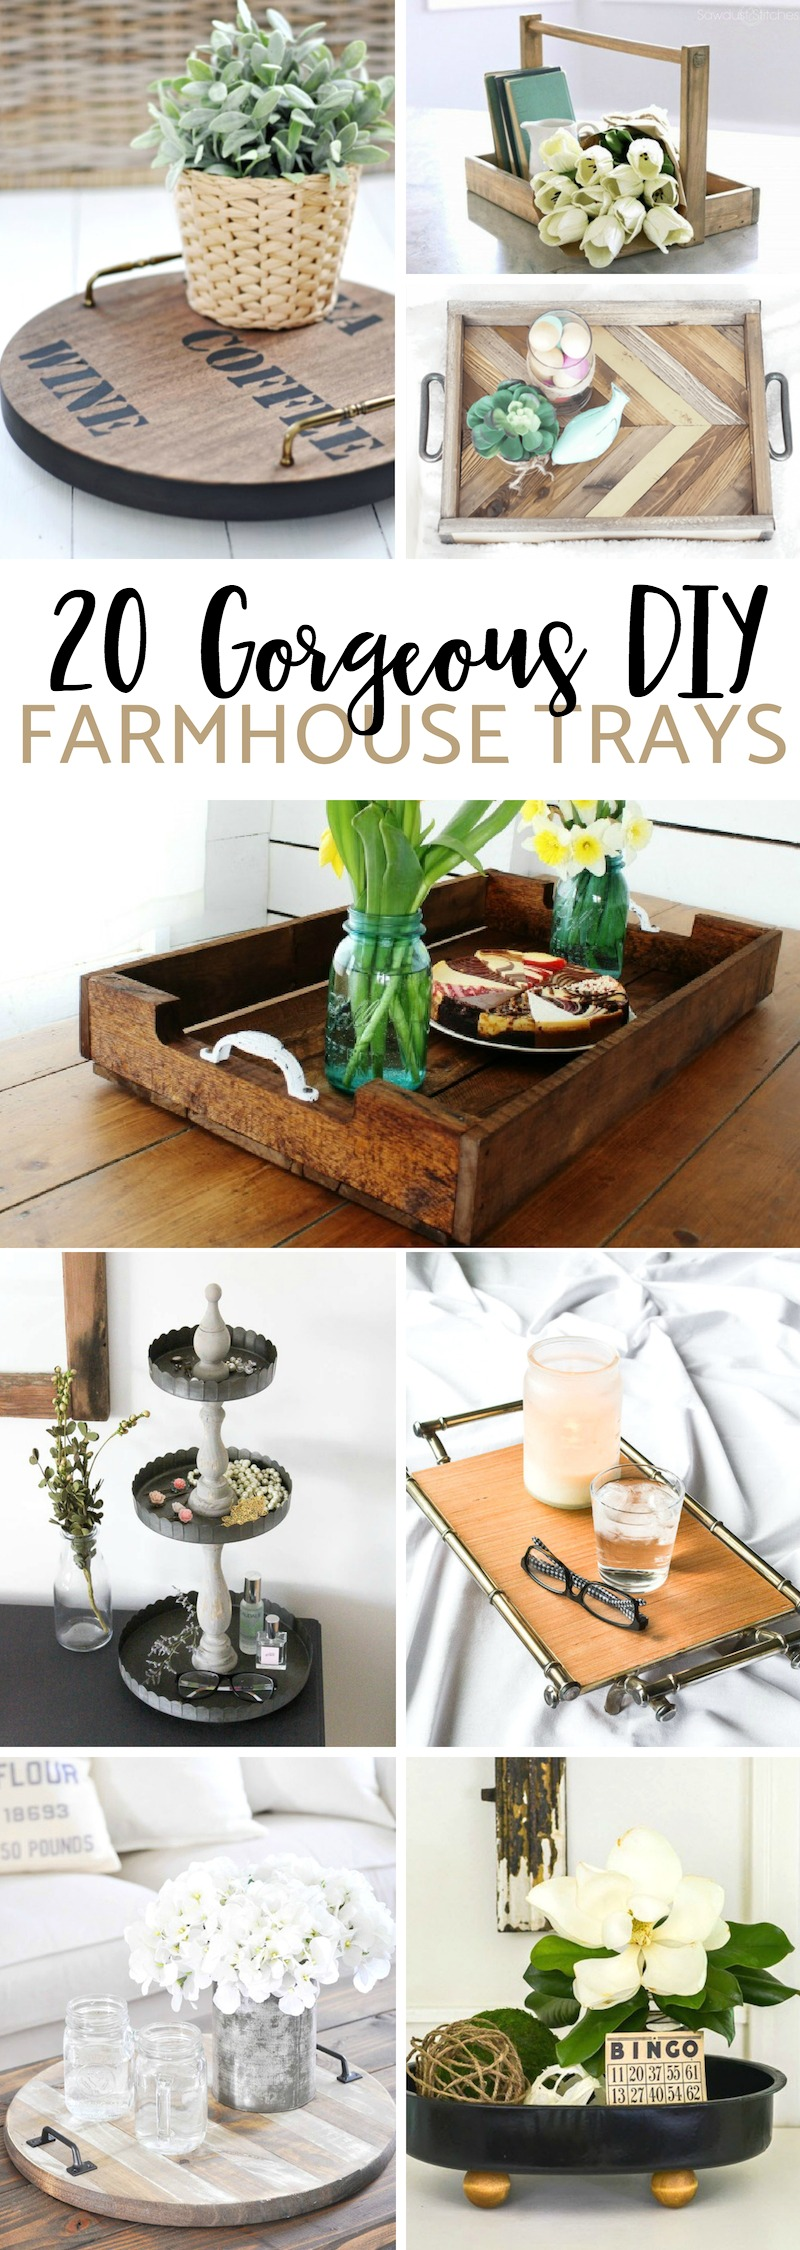 DIY Farmhouse Trays